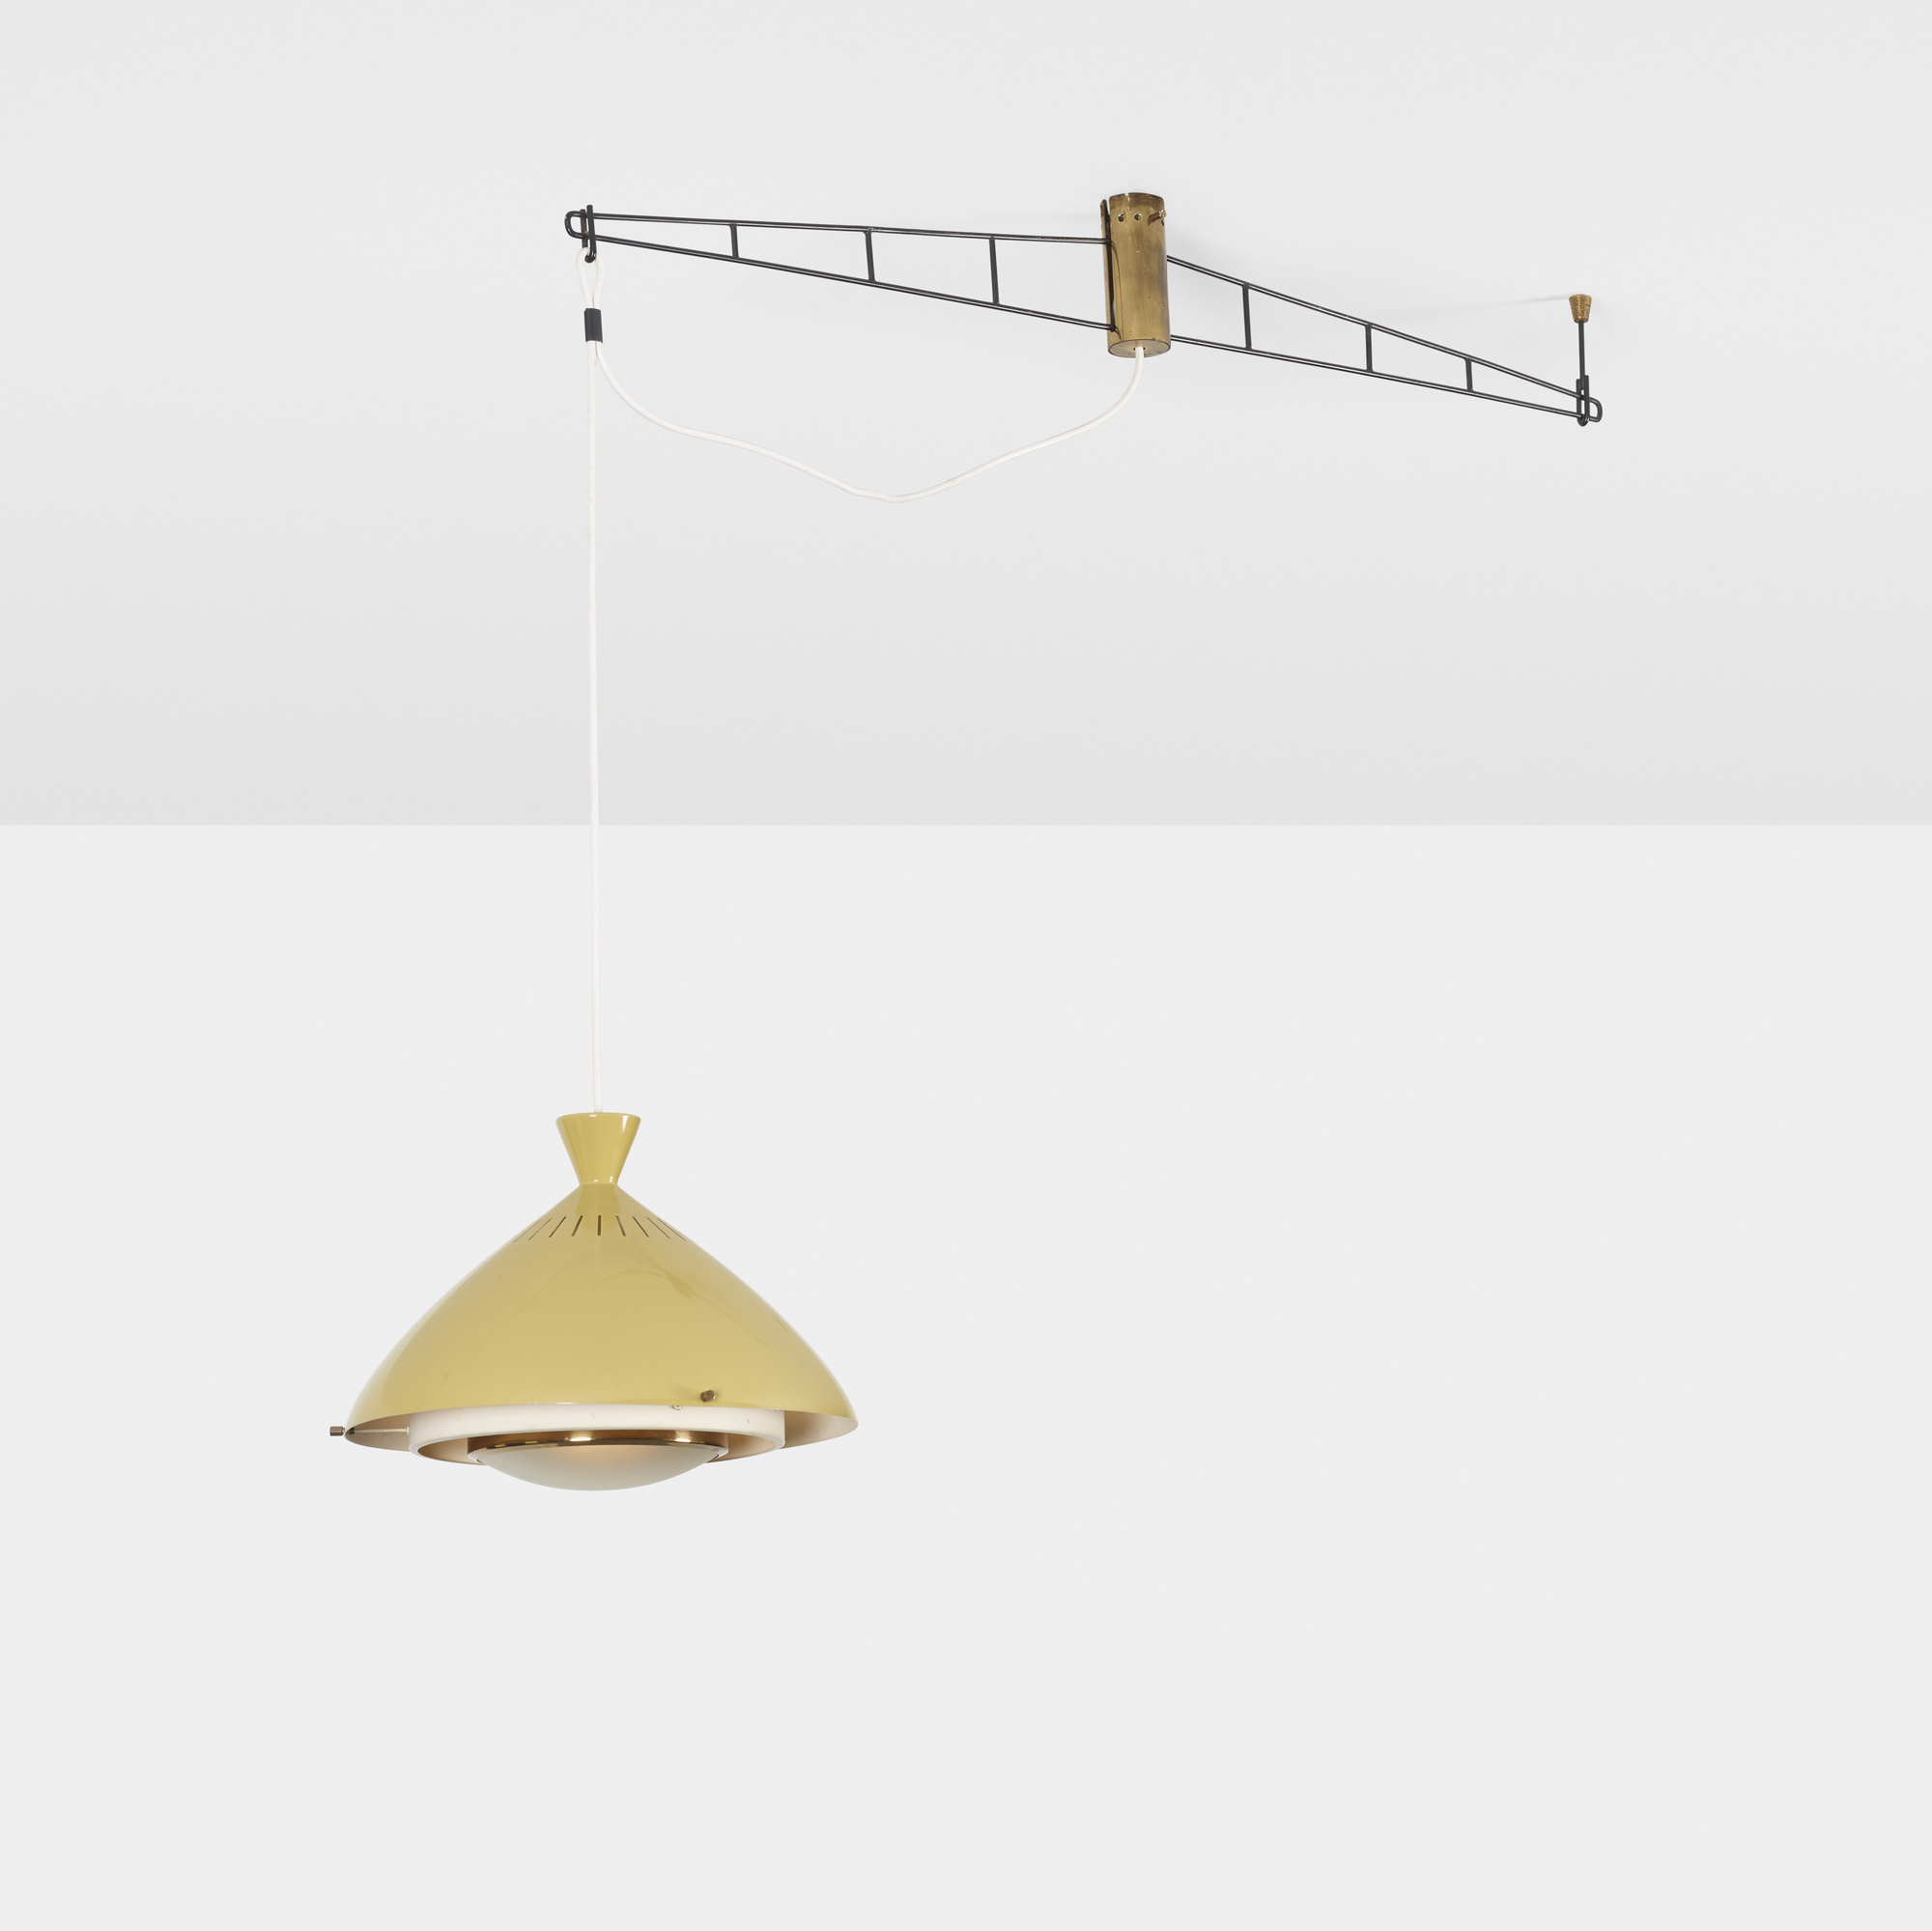 266: Stilnovo / ceiling light (1 of 2)